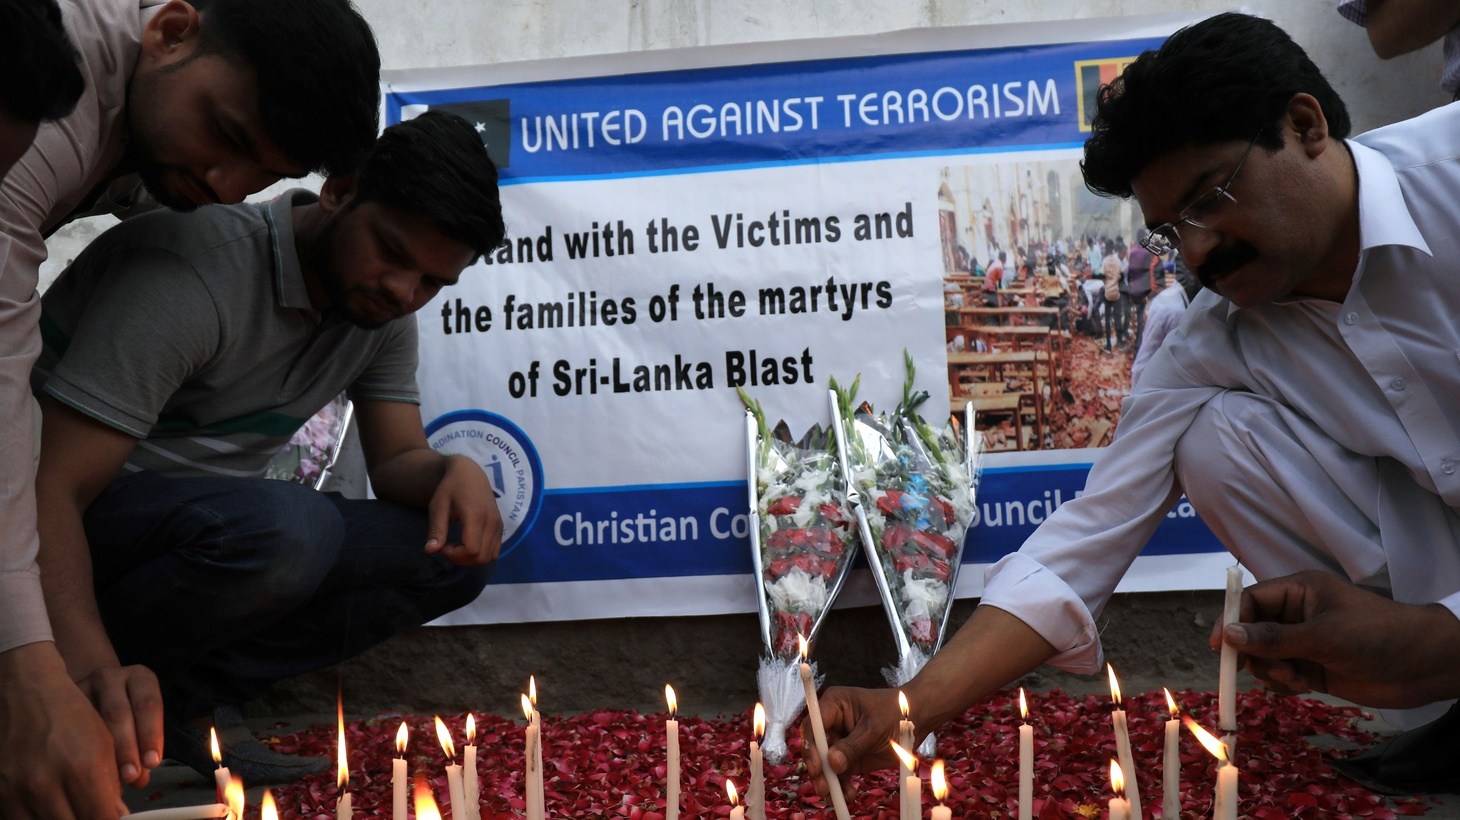 People light candles for the victims of Sri Lanka's serial bomb blasts, in Peshawar, Pakistan April 23, 2019.